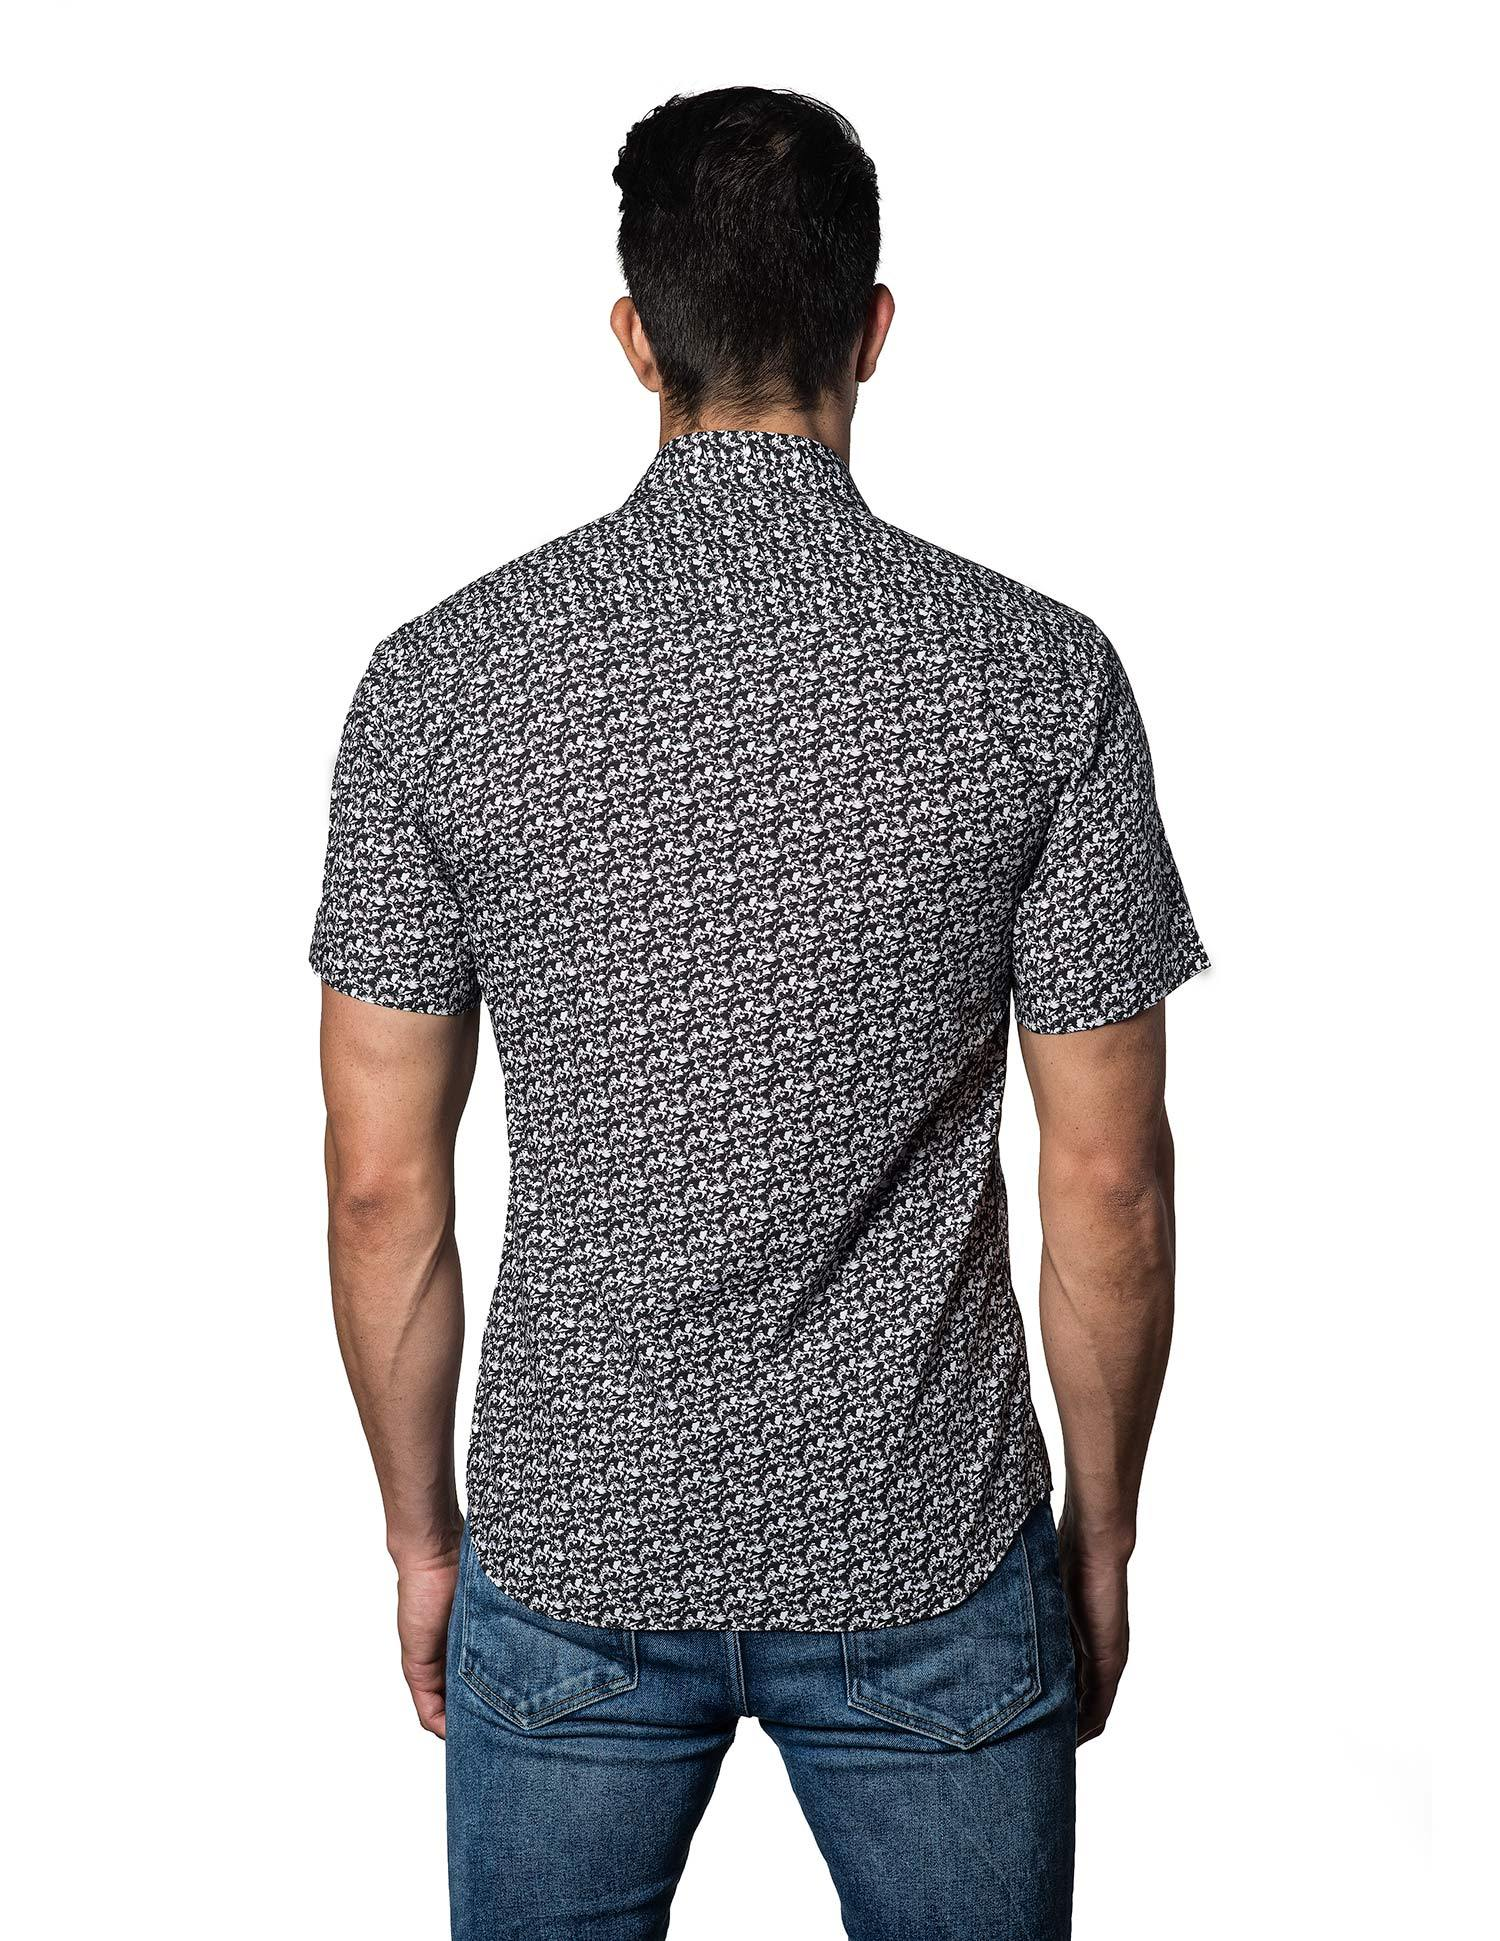 White and Black Floral Shirt for Men - back T-3092-SS - Jared Lang